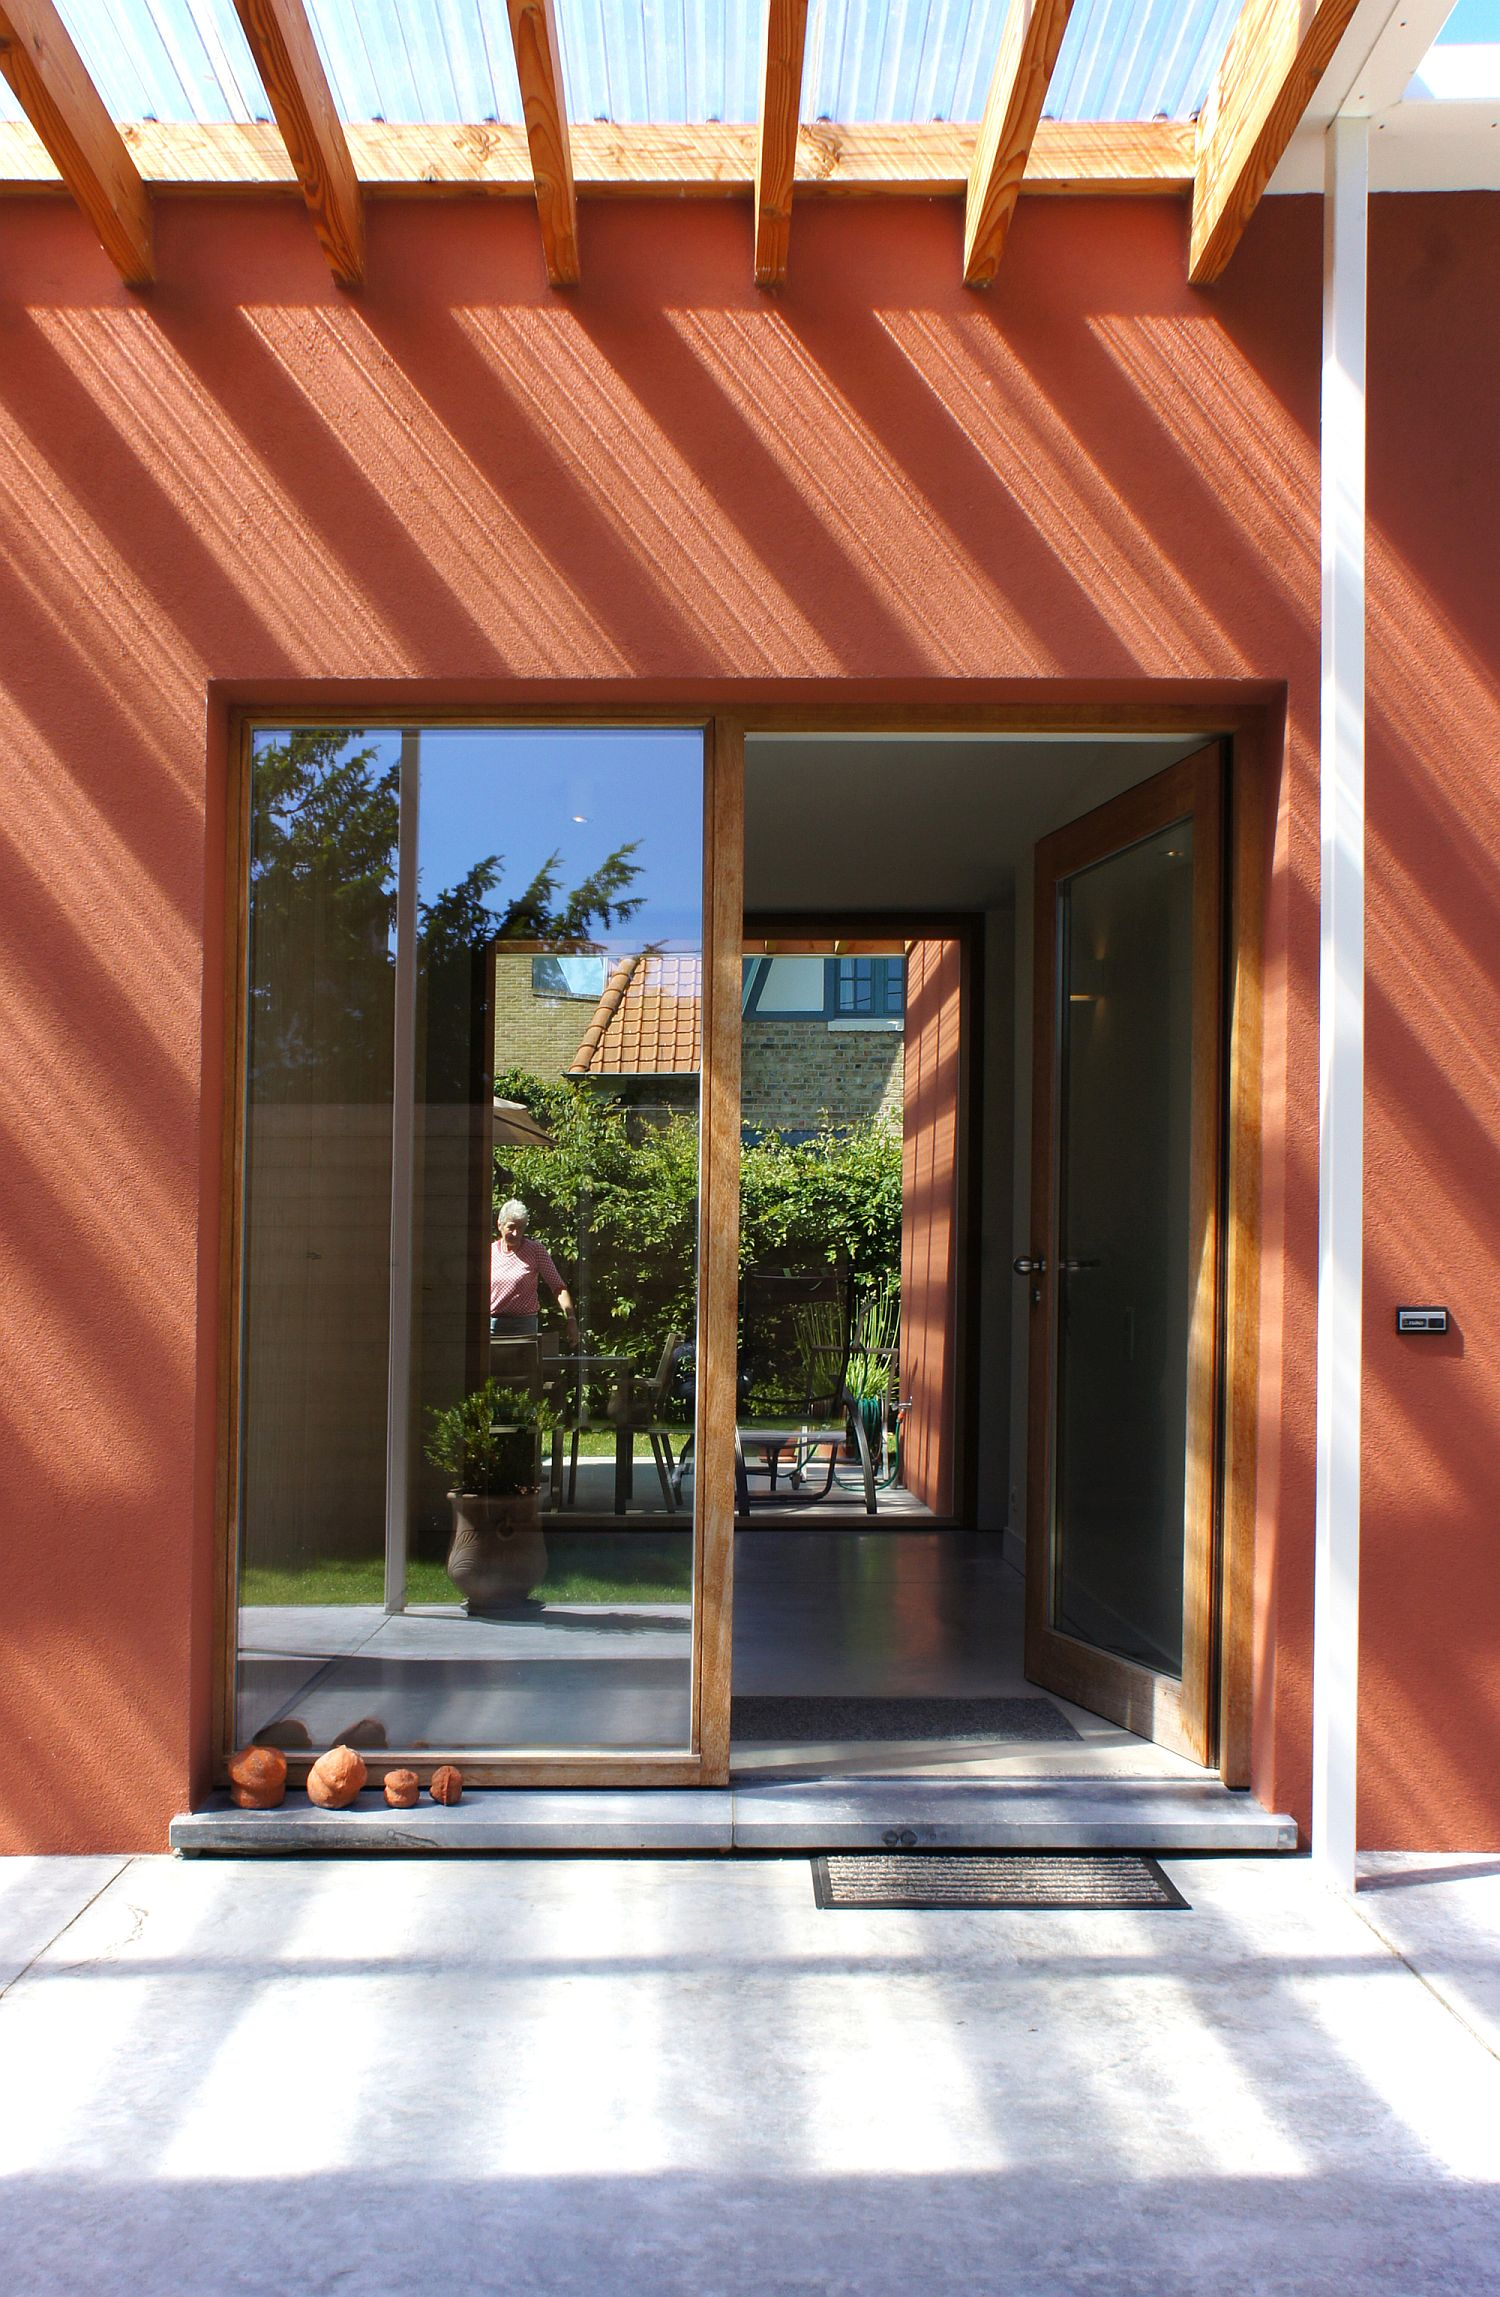 Bright orange exterior with reddish tint gives the home a Moroccan appeal